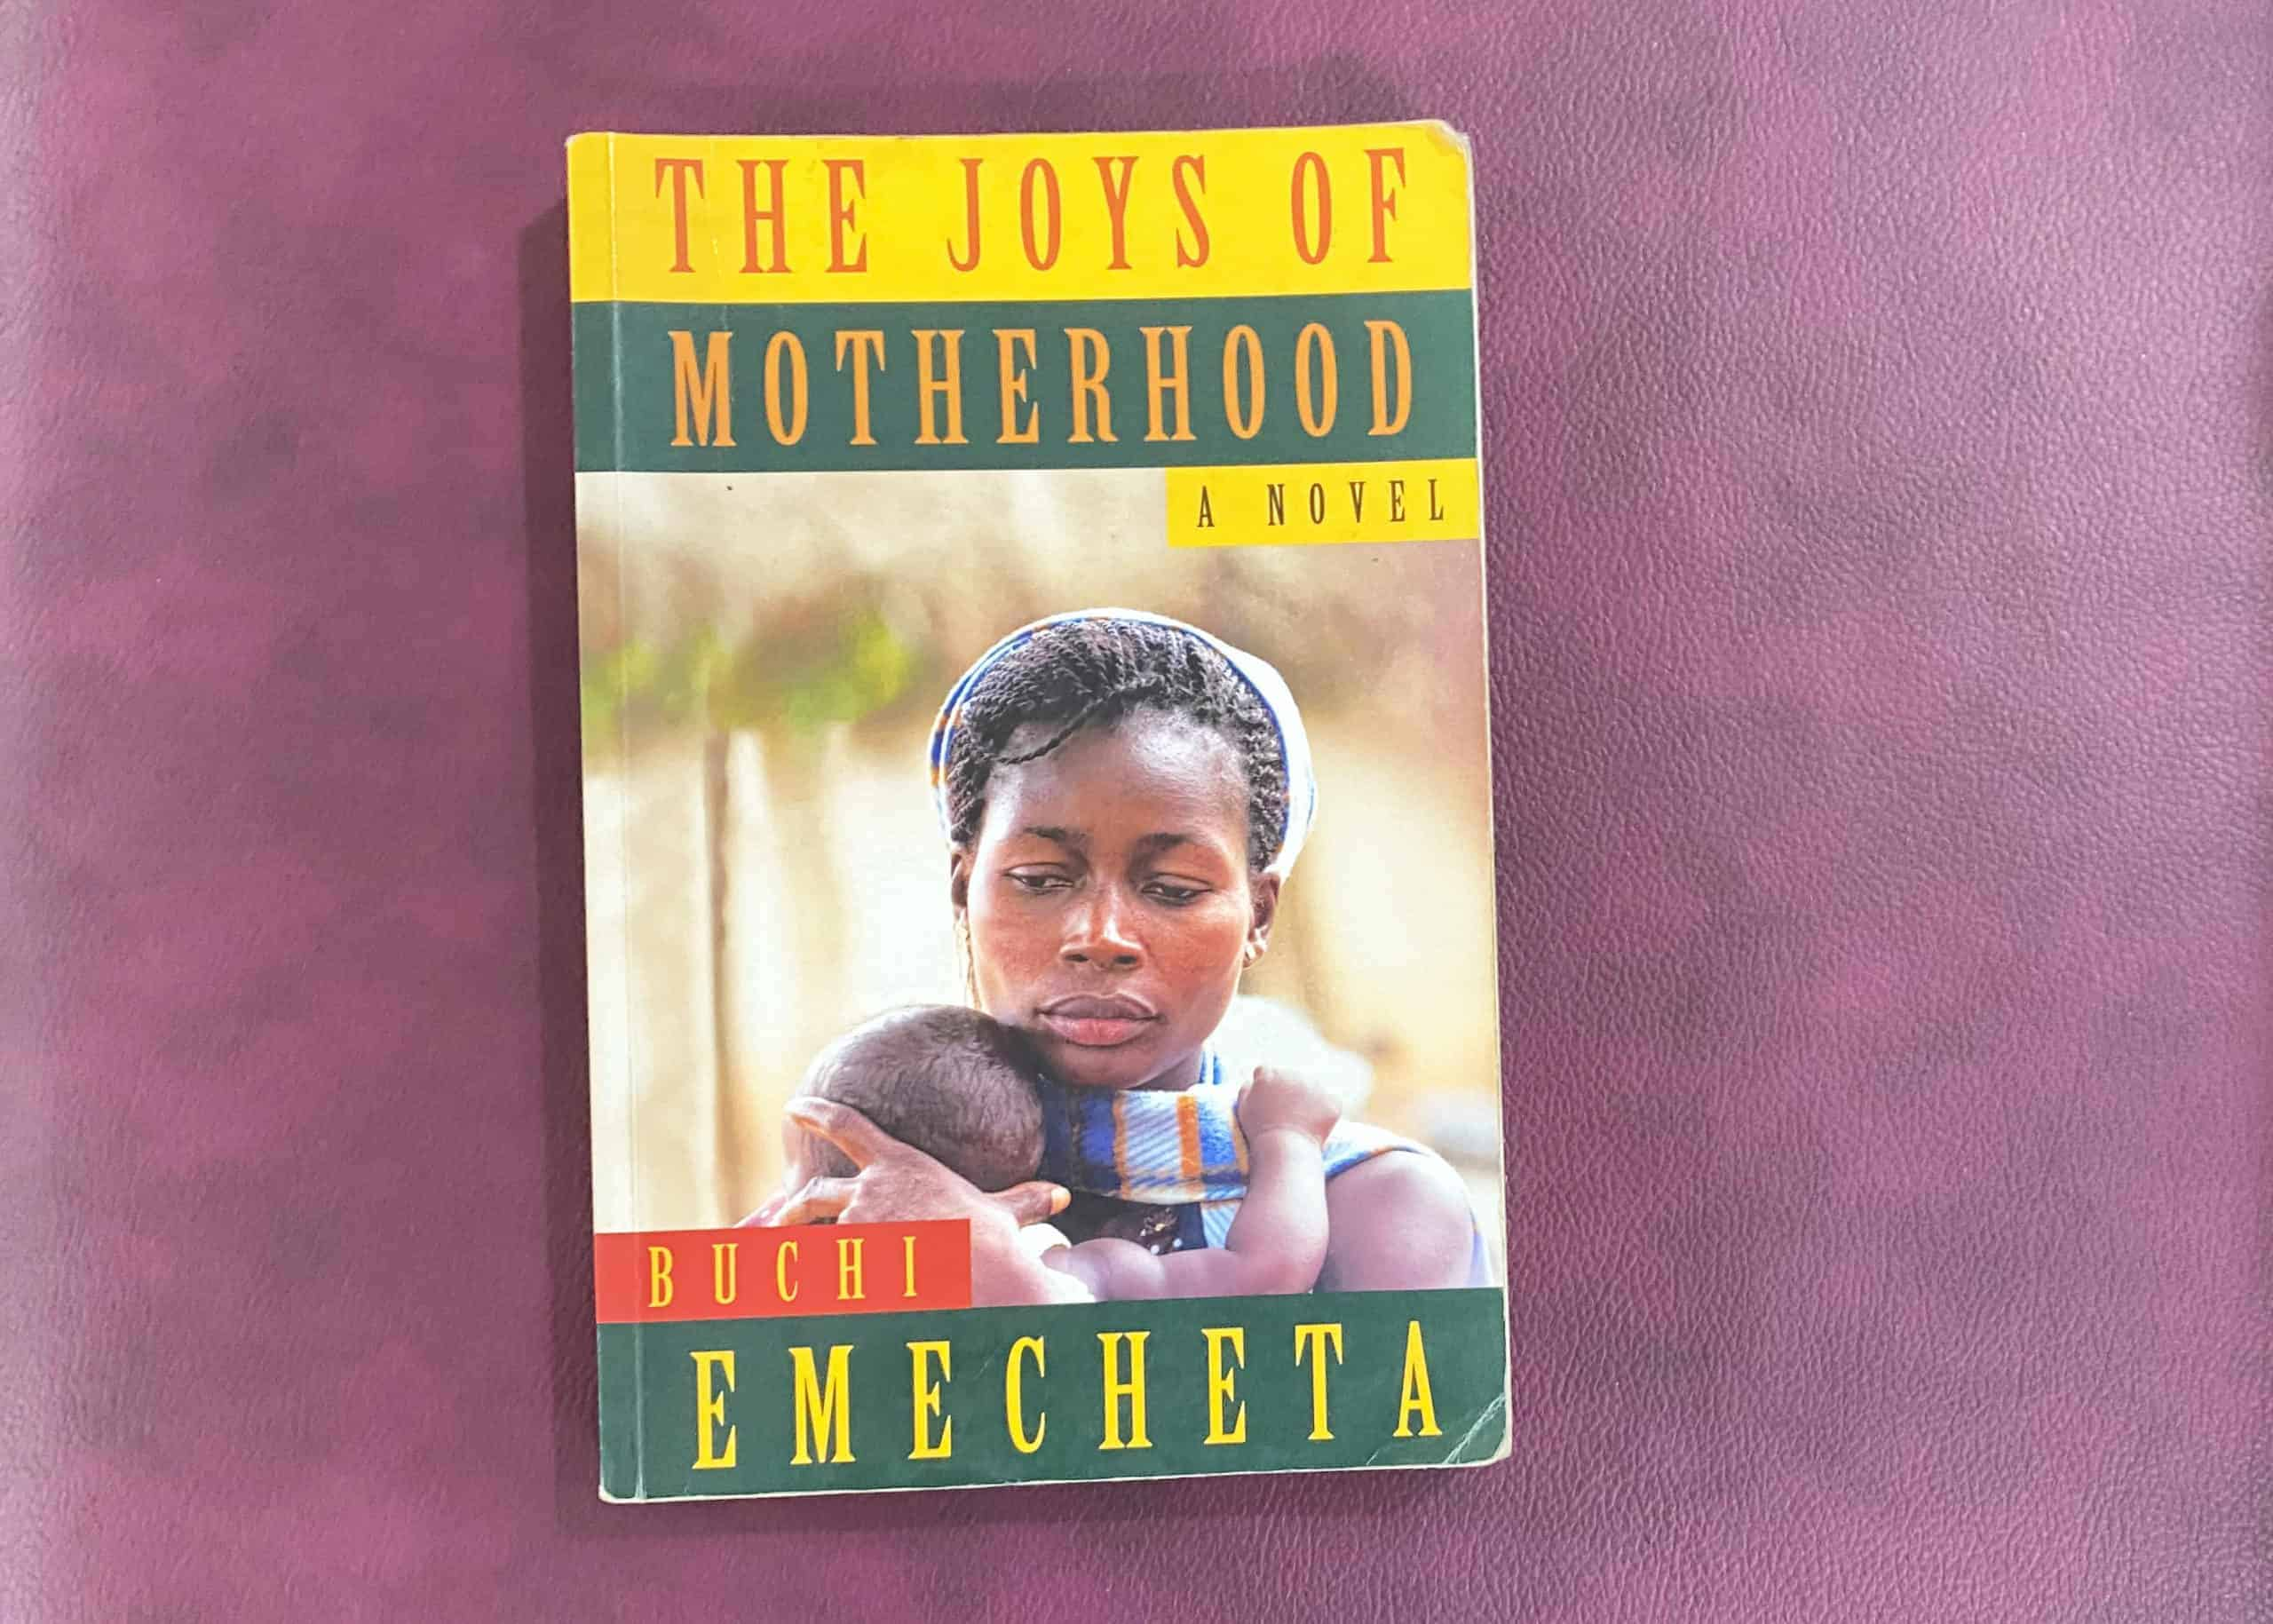 The Joys Of Motherhood Buchi Emecheta Author Review Rating Summary Novel